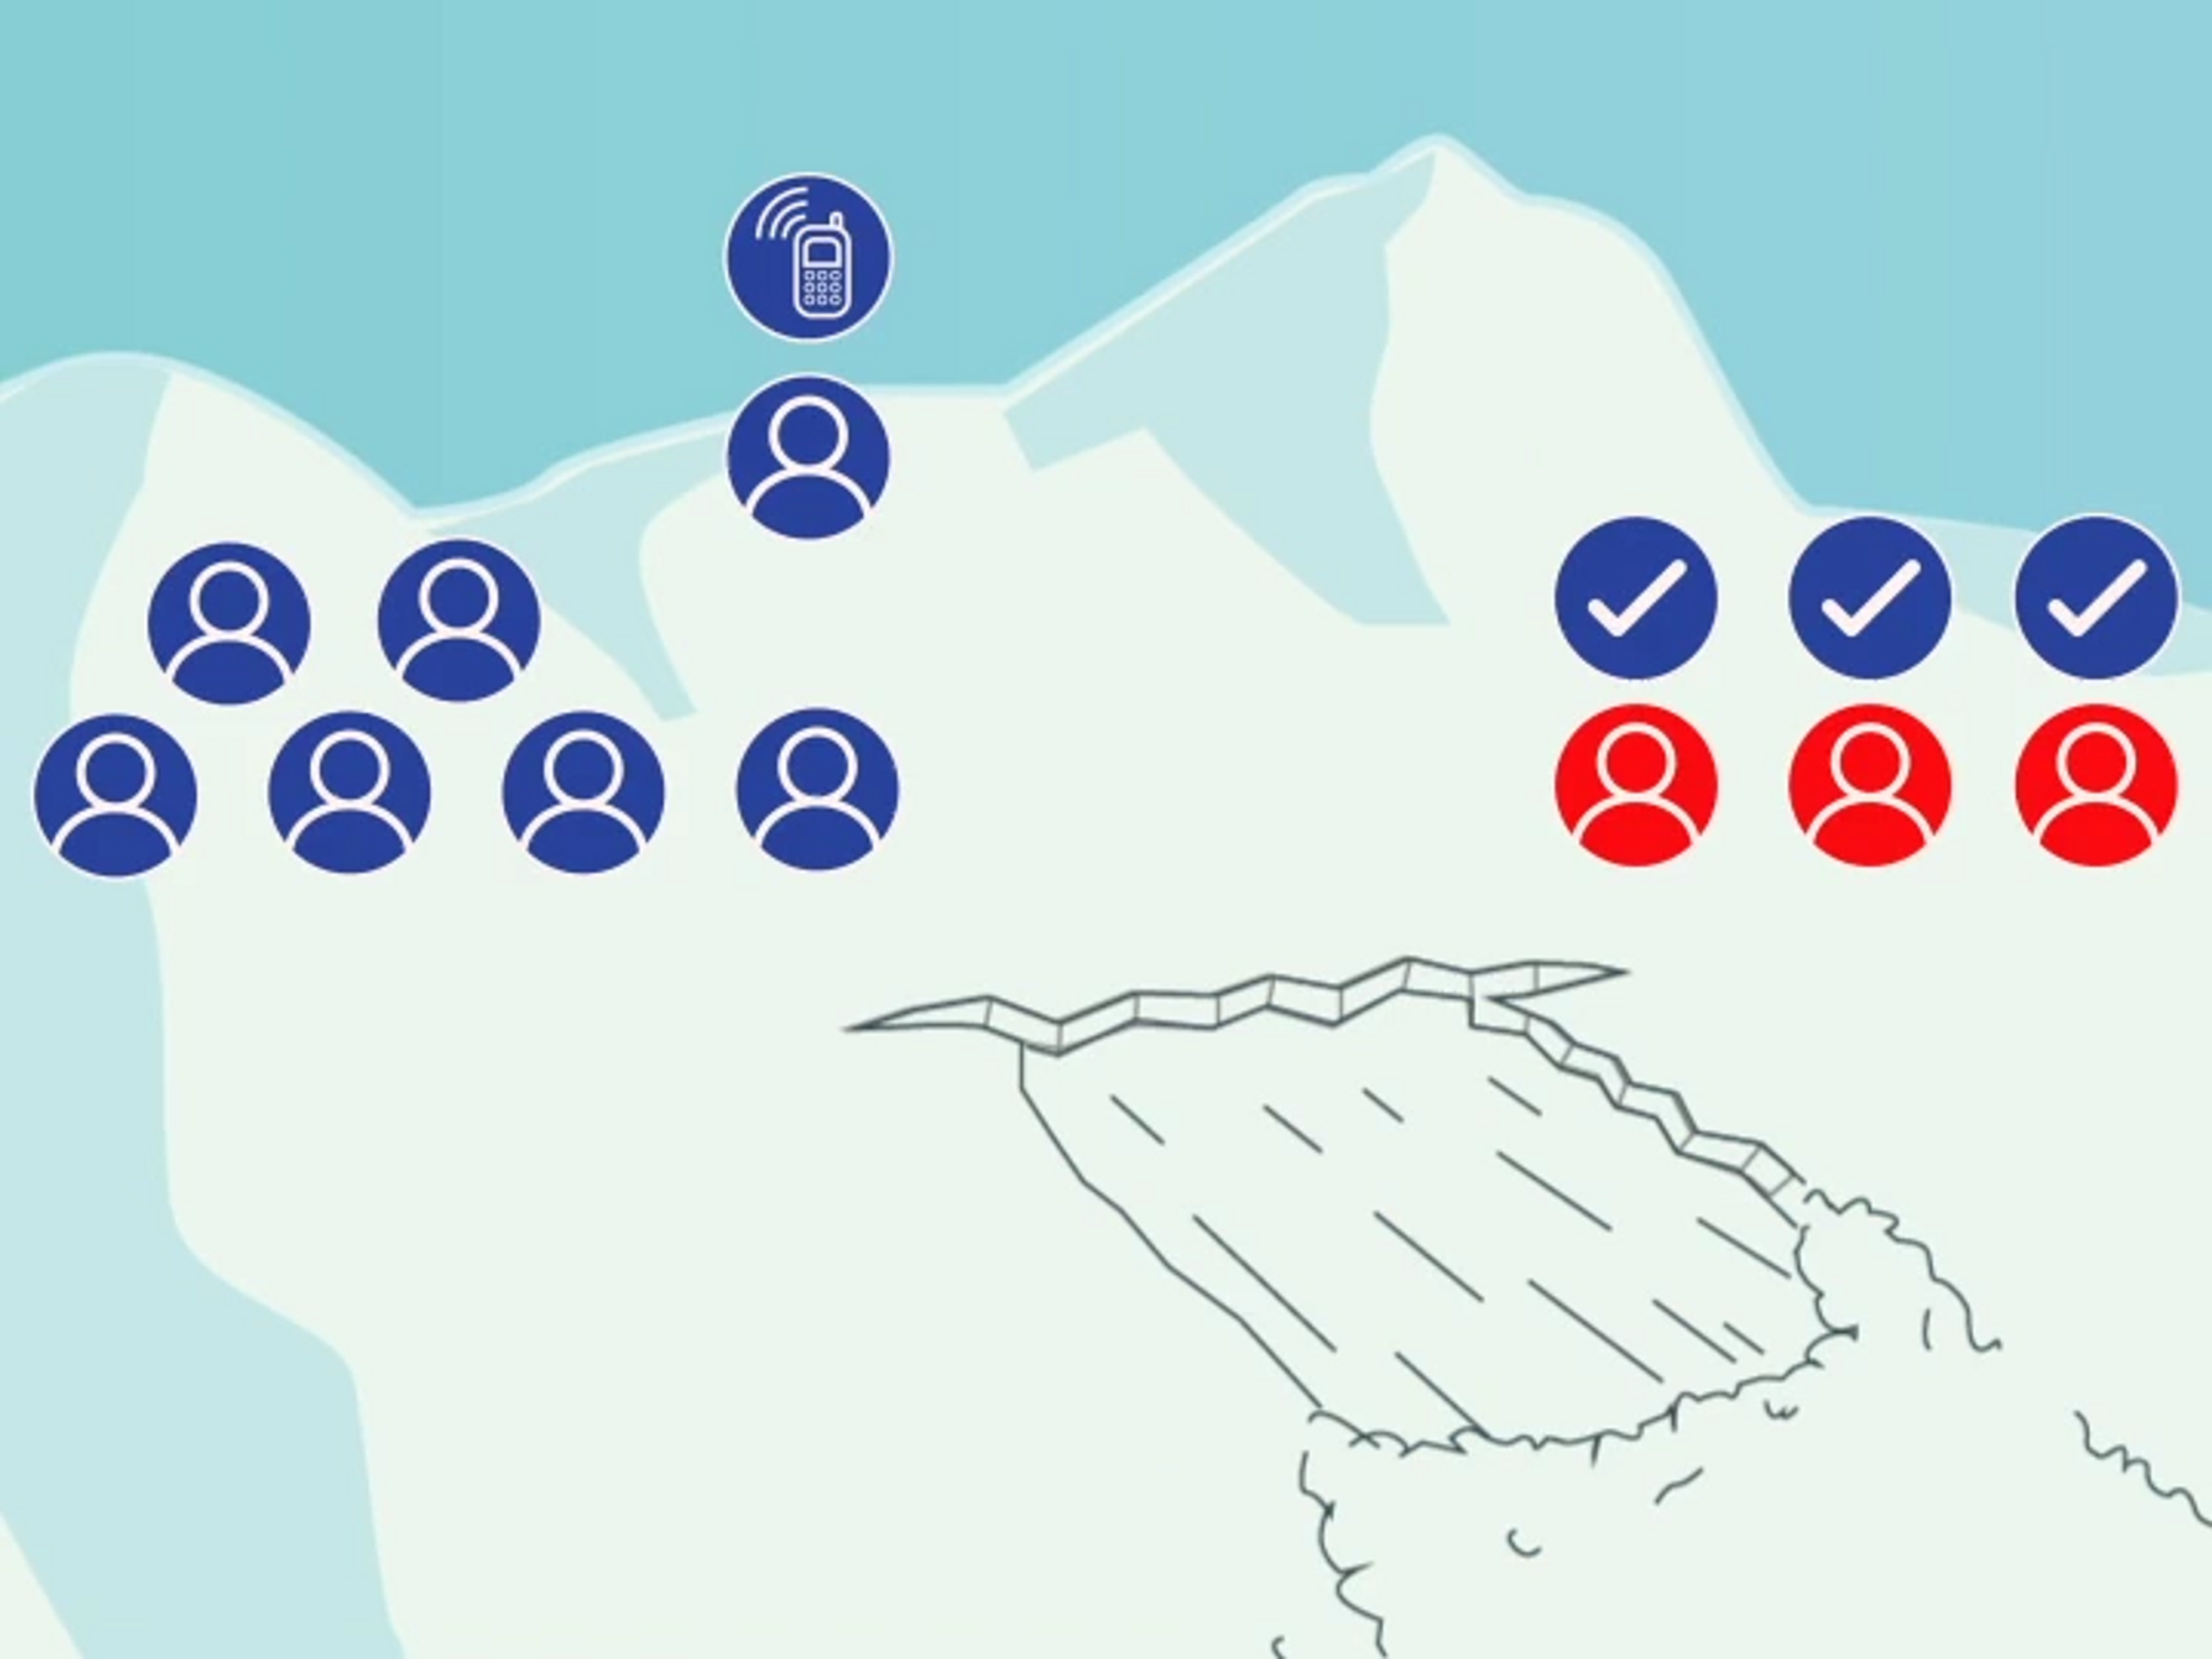 Diagram showing who might be available to help in an avalanche and when to call them.